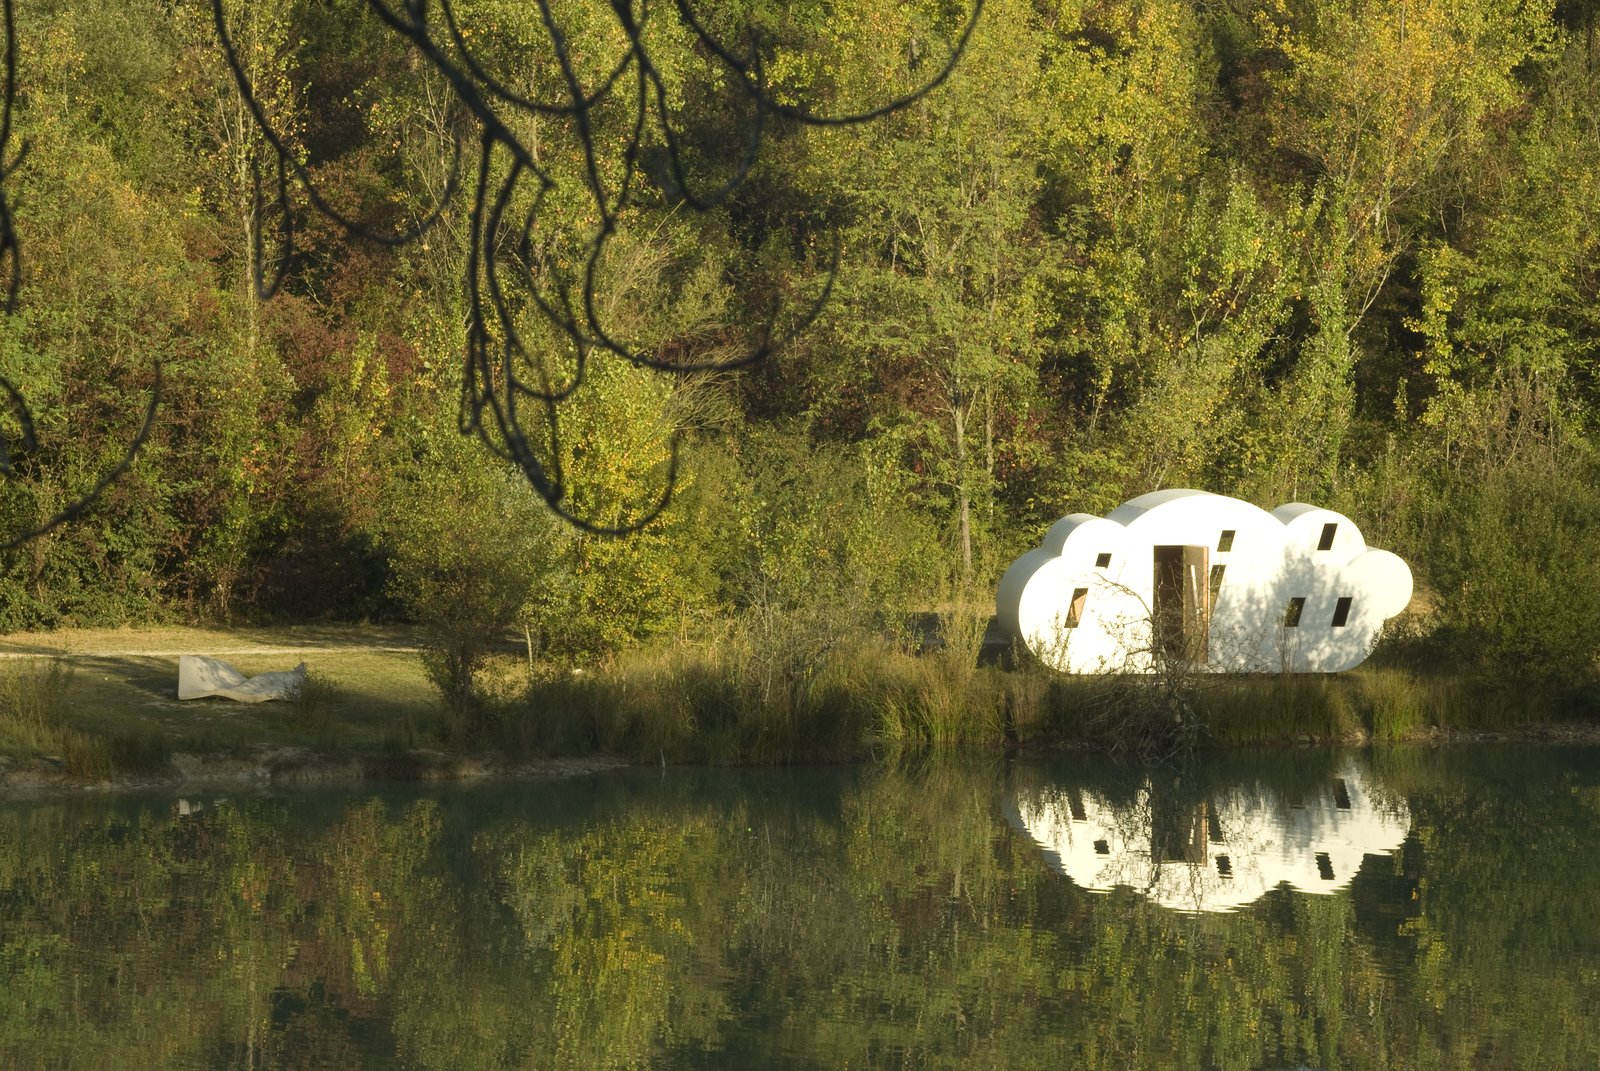 """Architect Frederic Latherrade and his firm Zebra3 are building a fantastical system of waystations around the Bordeaux countryside to encourage hiking and exploration, such as """"Le nuage.""""  Cabins & Hideouts from Tiny Vacation Shelters in the French Countryside"""